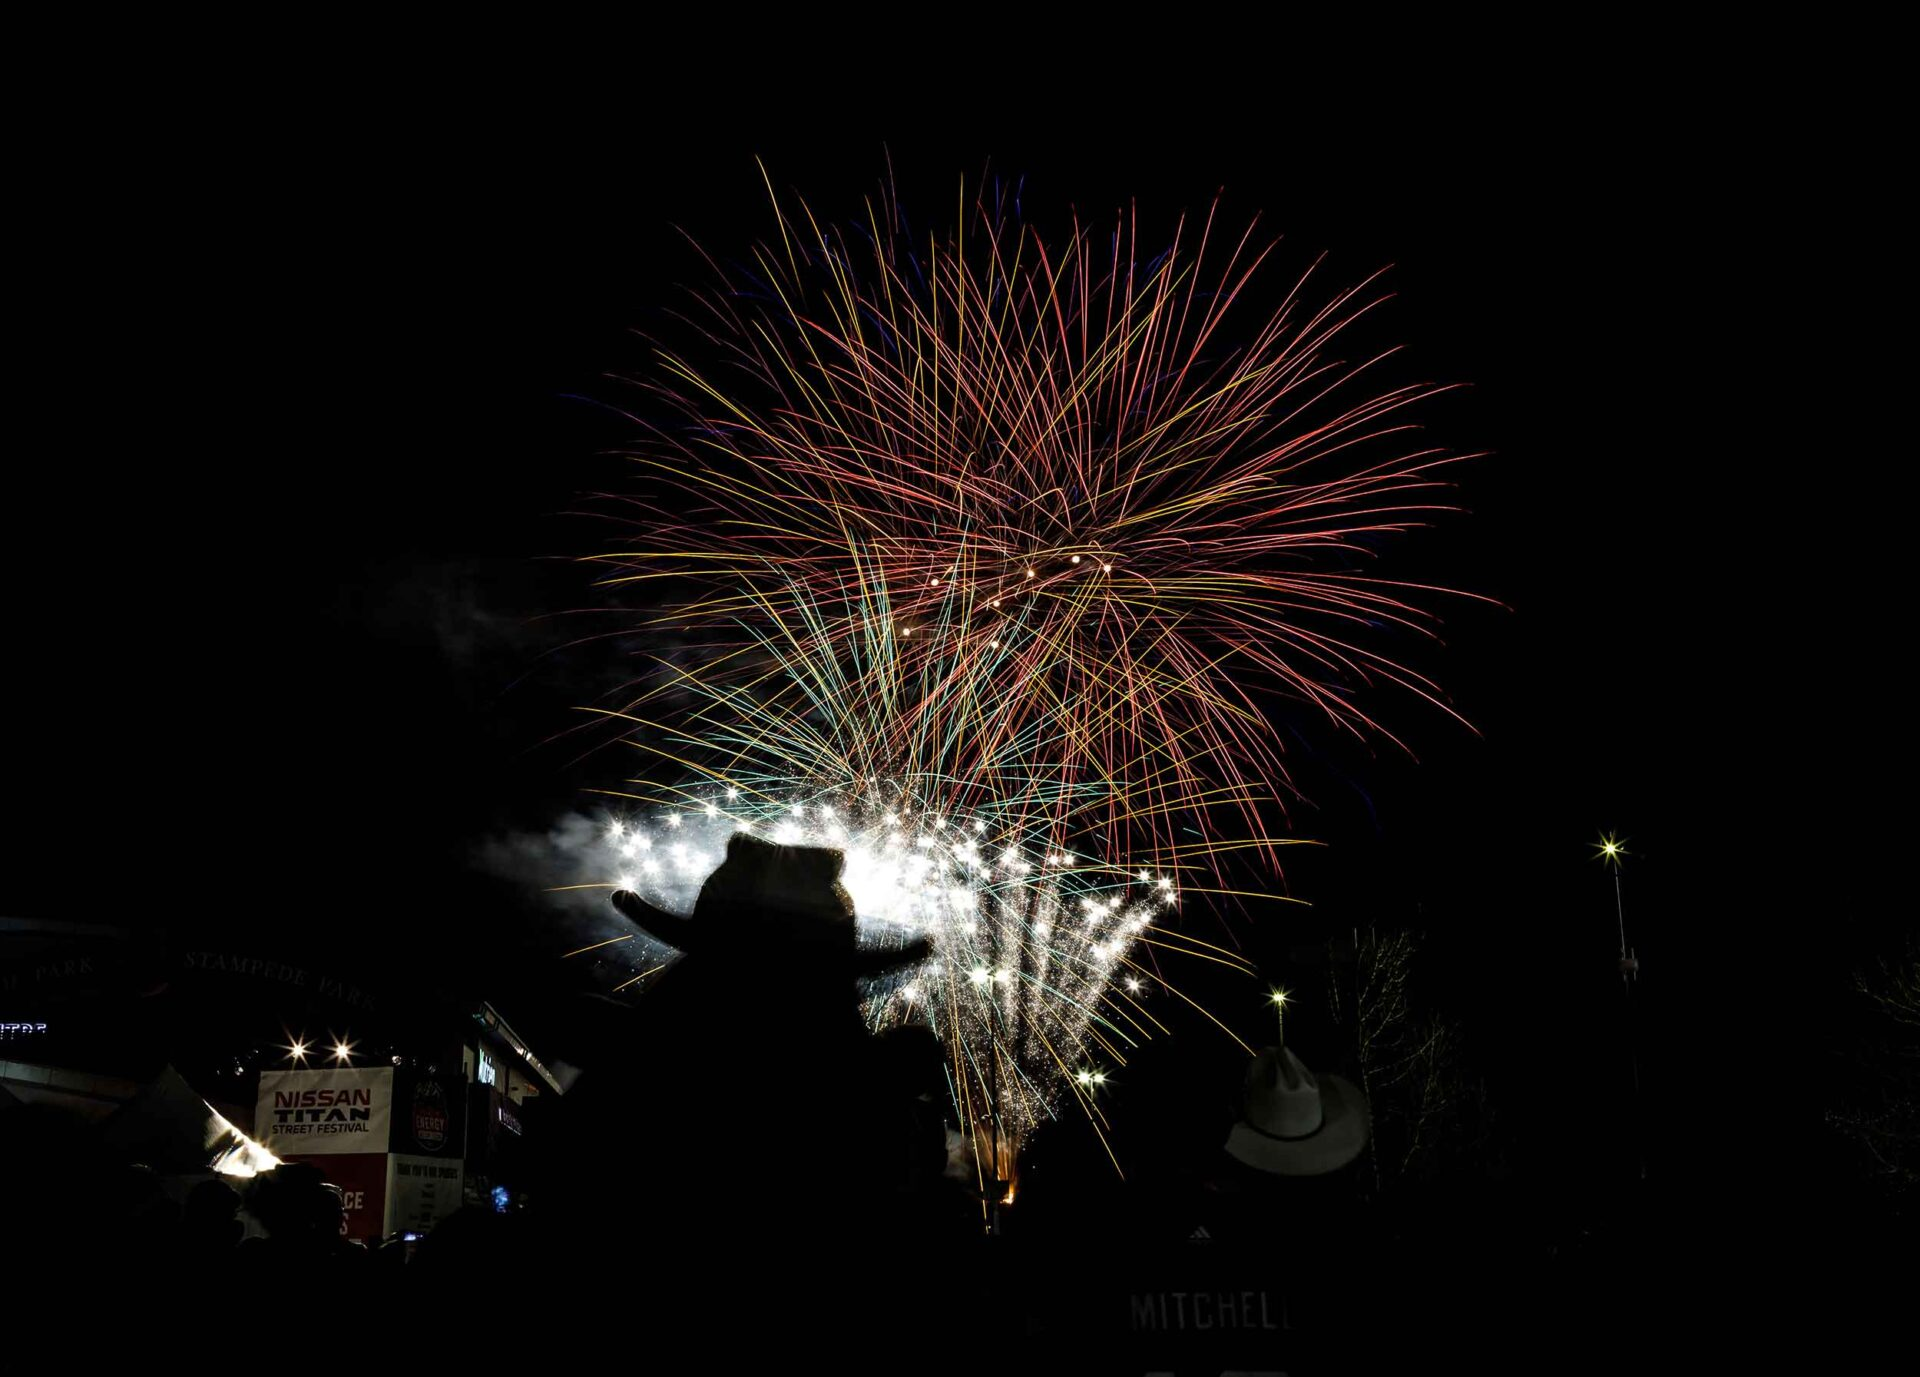 Silhouette of a cowboy hat in front of fireworks at the 2019 Grey Cup Festival